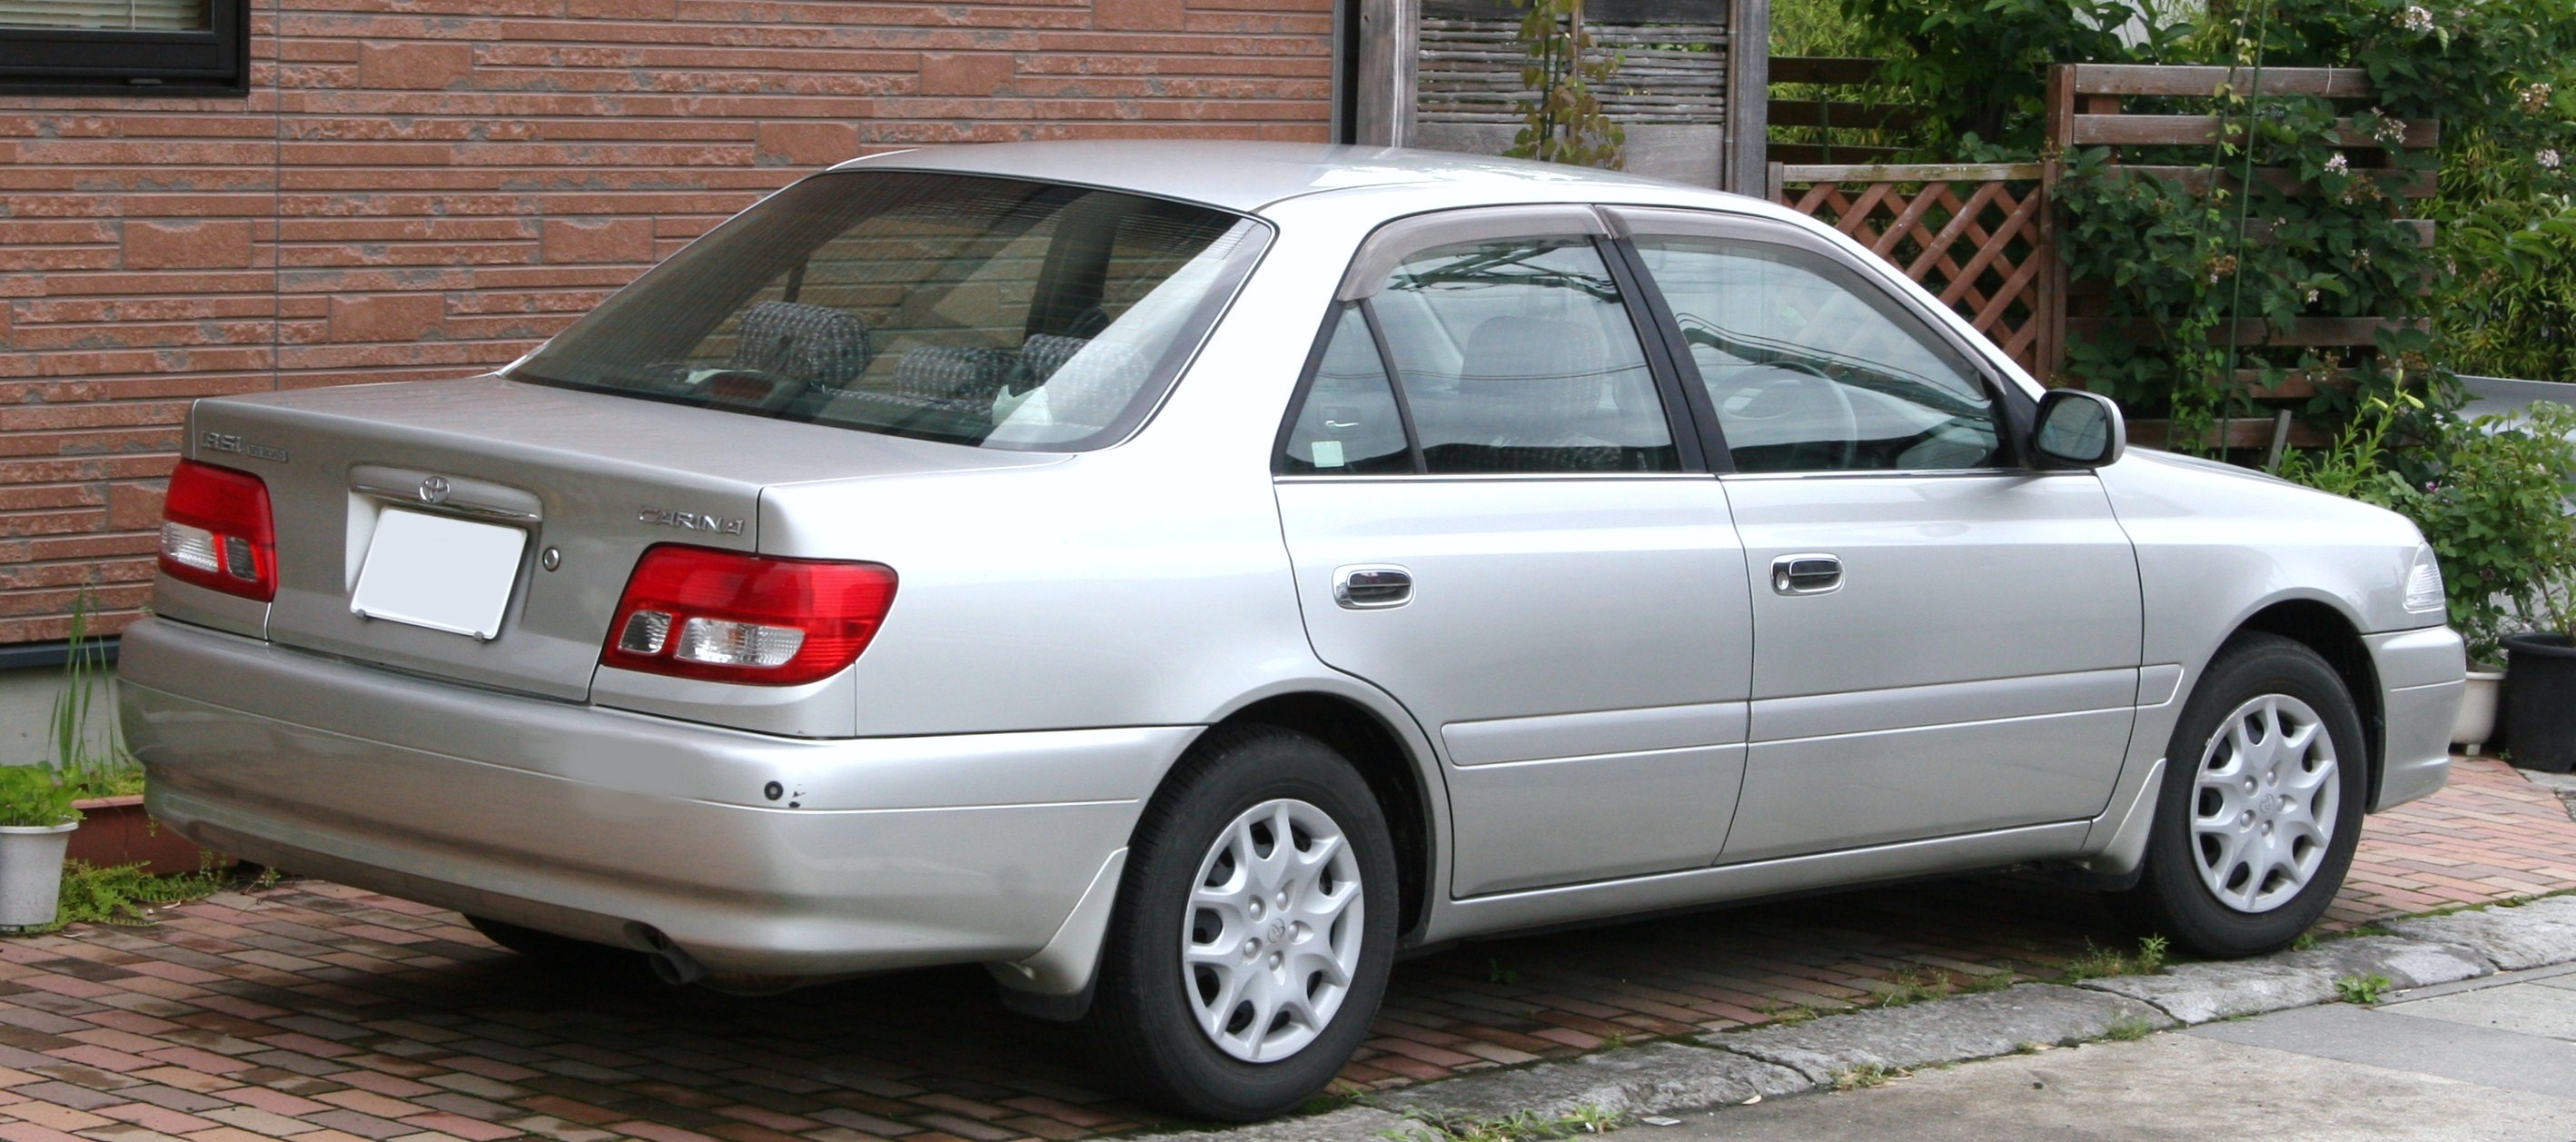 1998 Toyota Carina 1 6 Gt Automatic Related Infomation